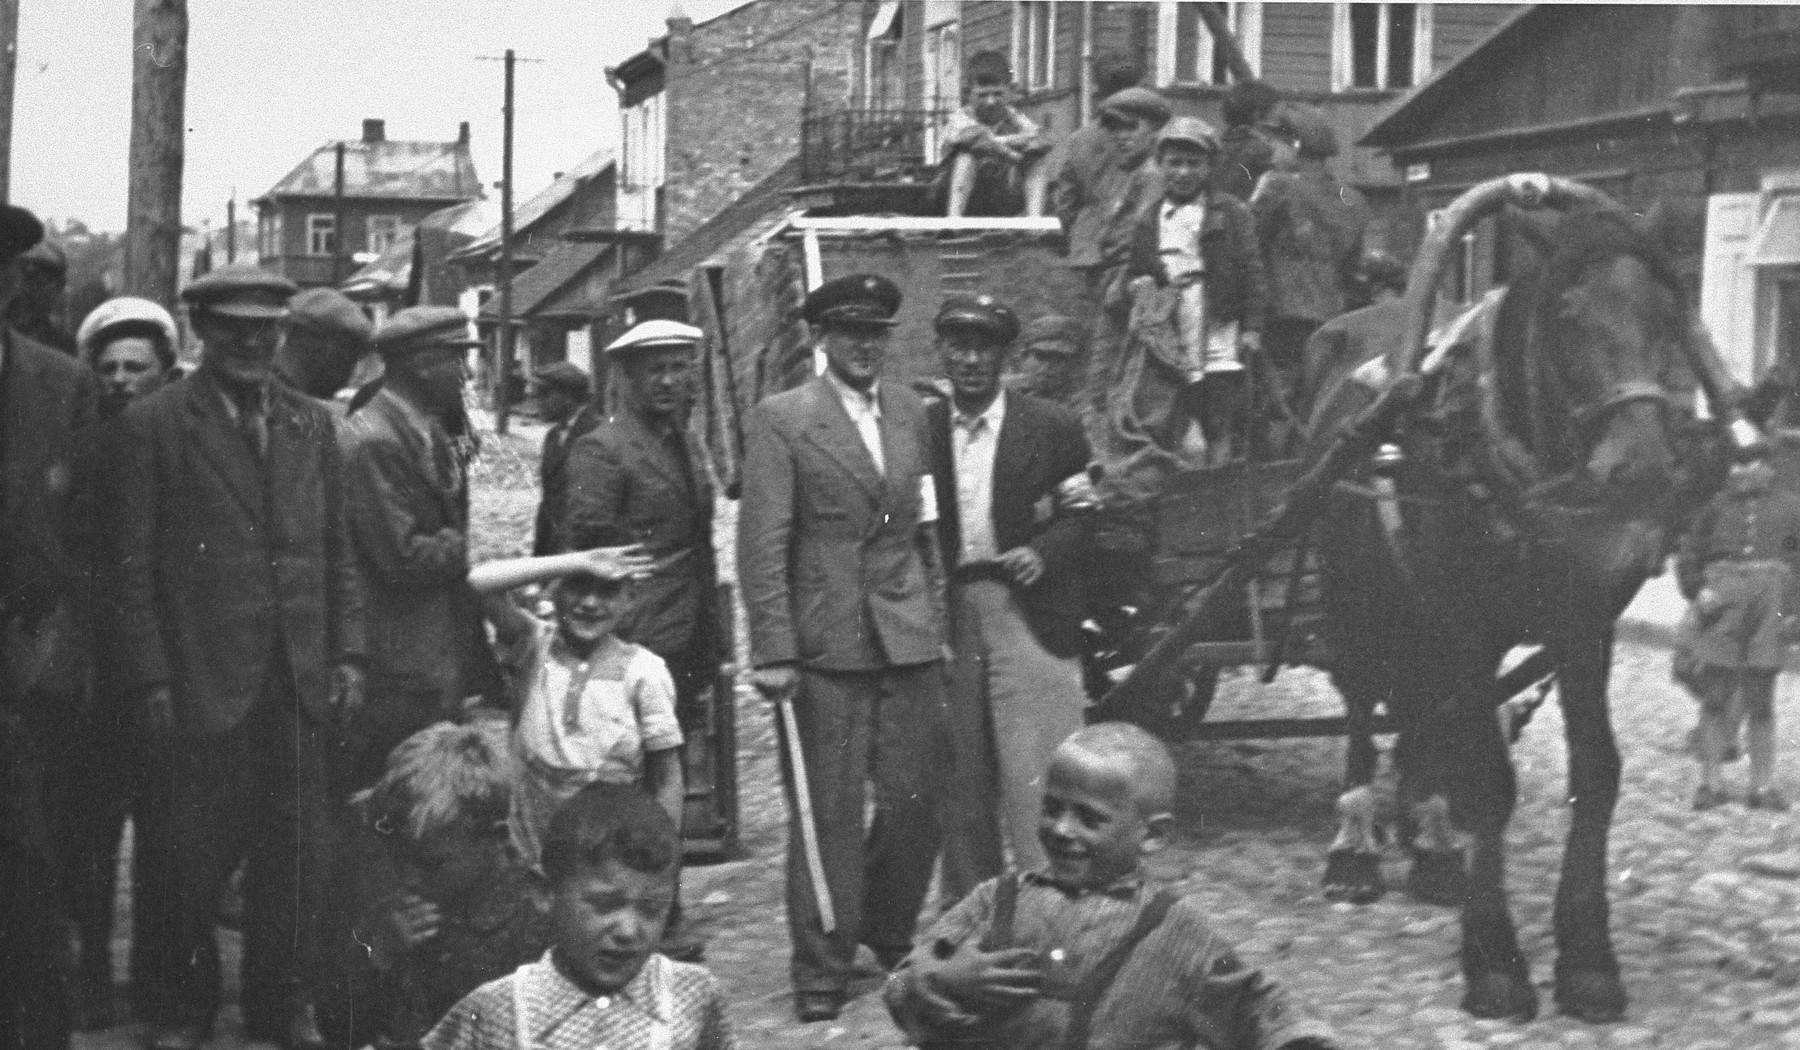 Street scene in the Kovno ghetto.    The wagon is transporting mattresses to former cinema being used to house Jews arriving to the ghetto from Zezmer.